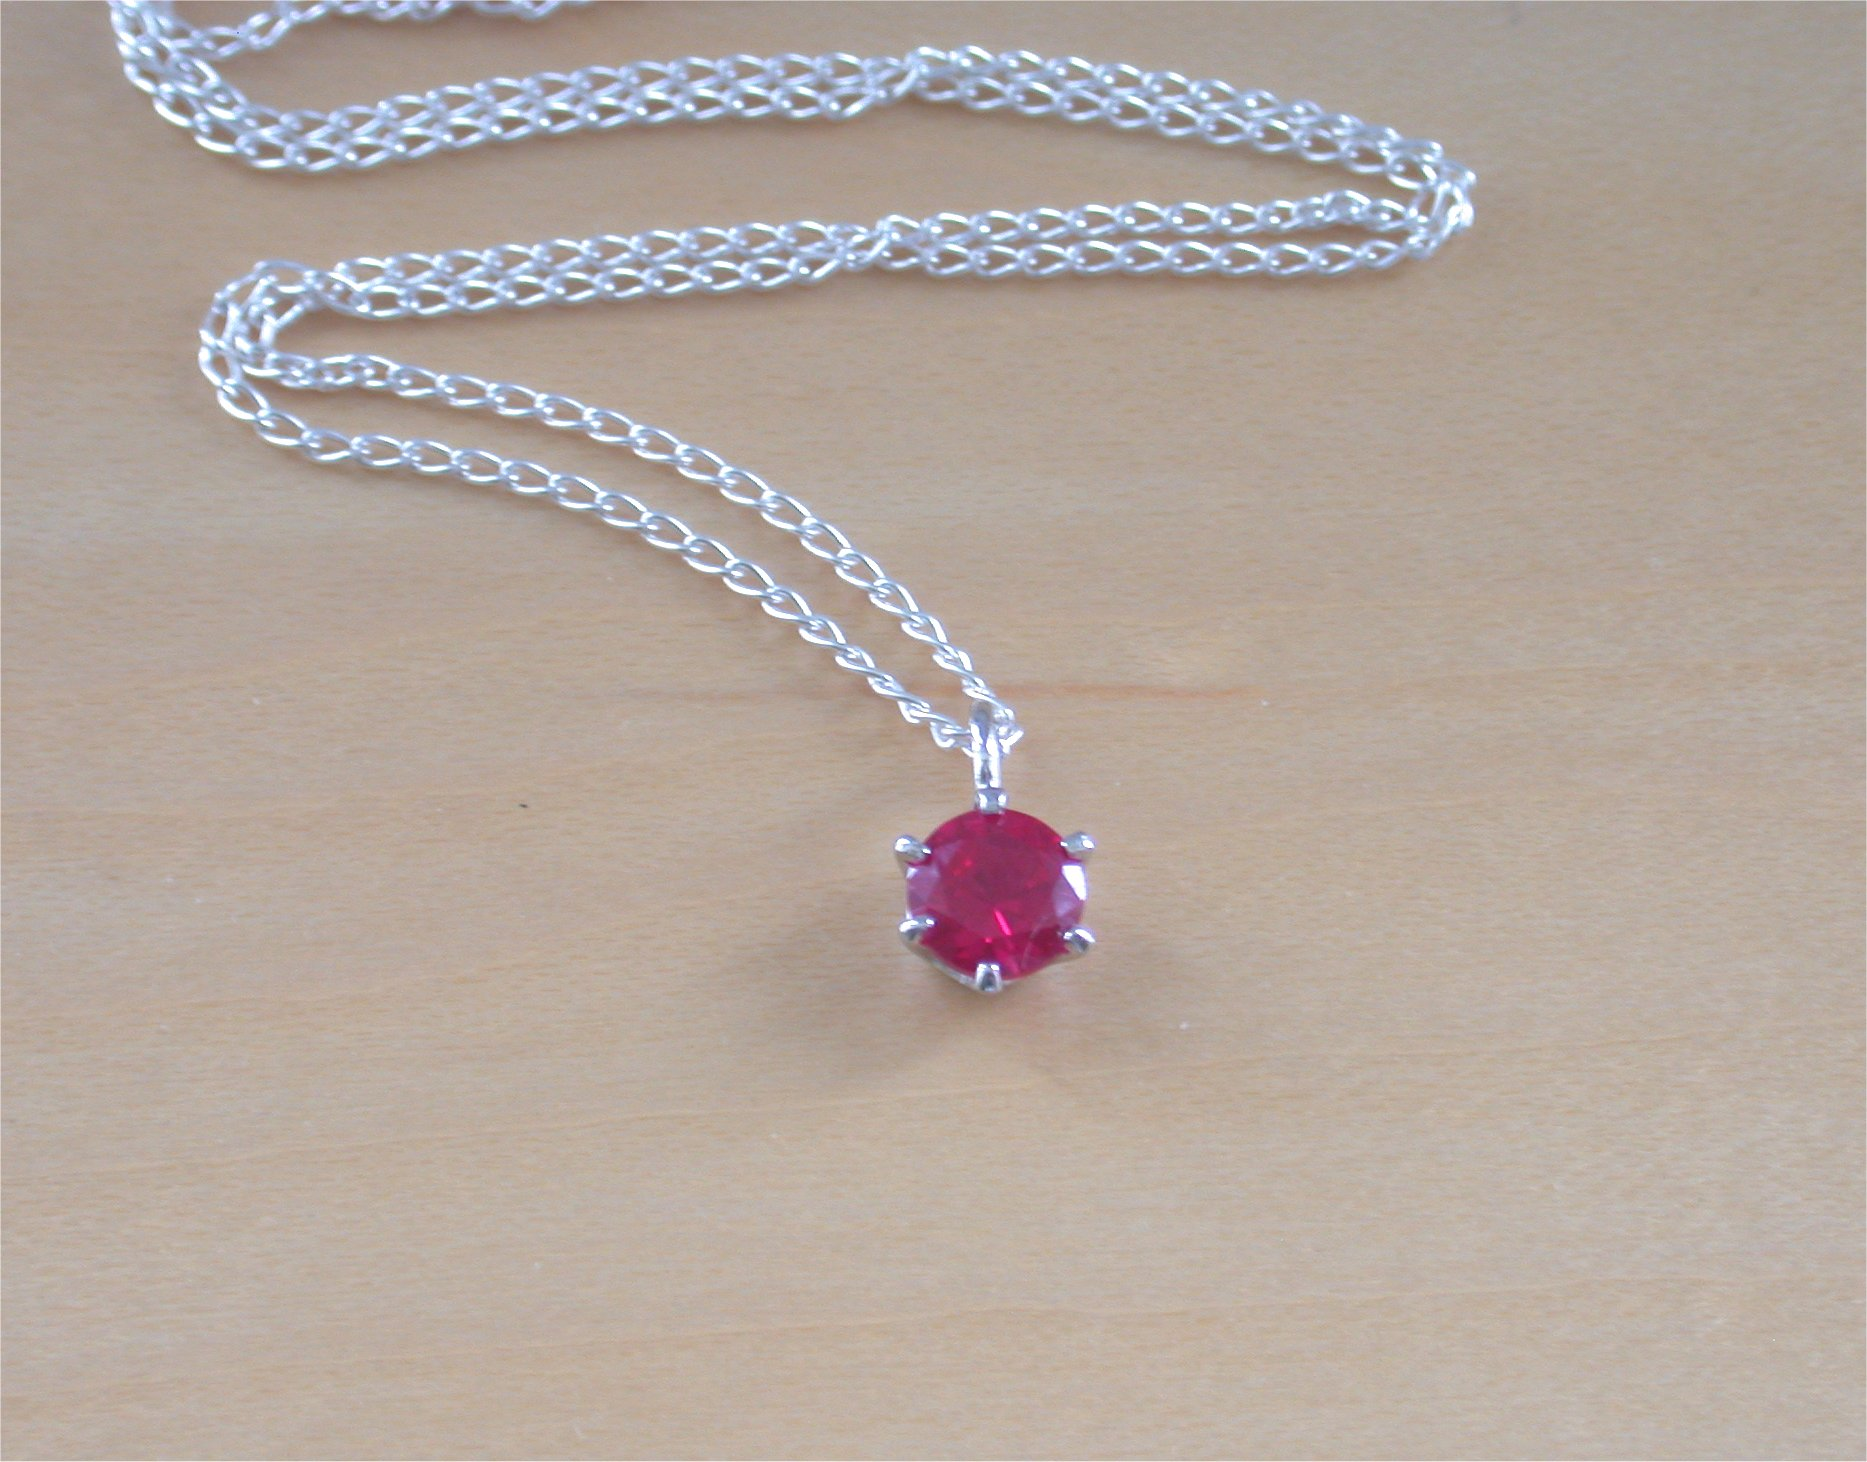 jewellery s handcrafted in ruby bridal silver product necklace with jewelry natural earrings